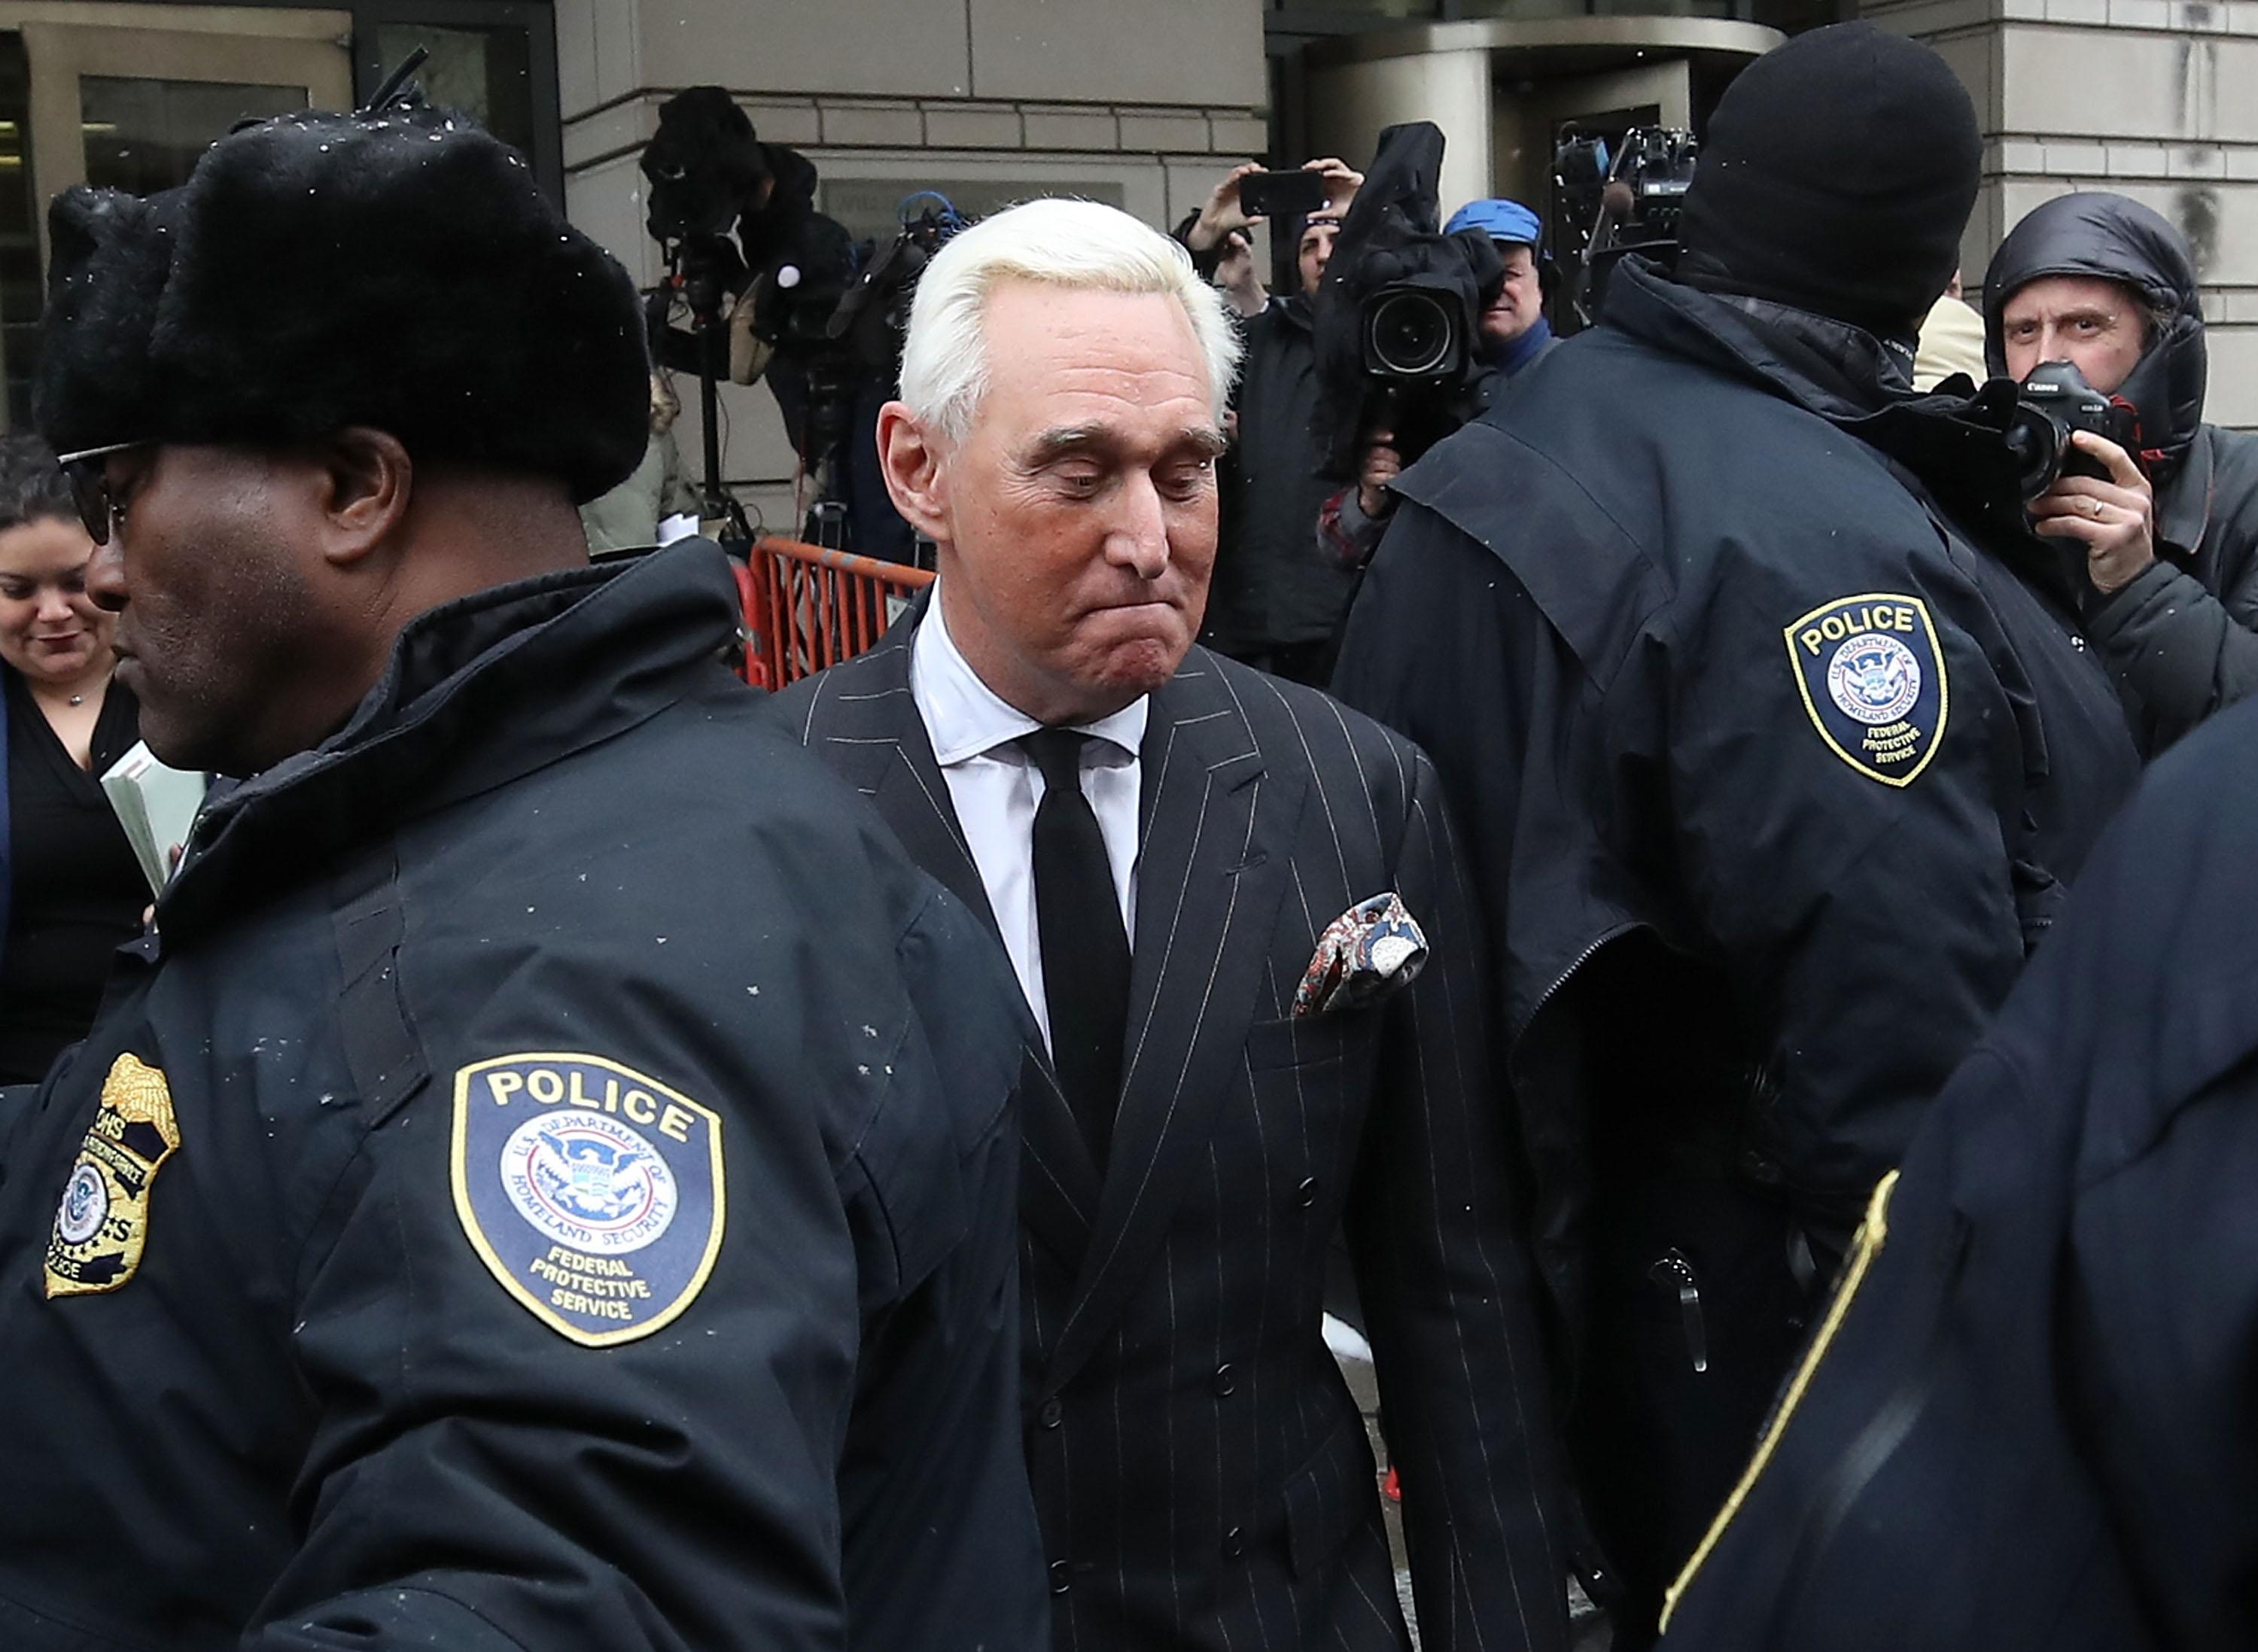 Roger Stone glances downward as he moves through a crowd of police and media in front of the courthouse.